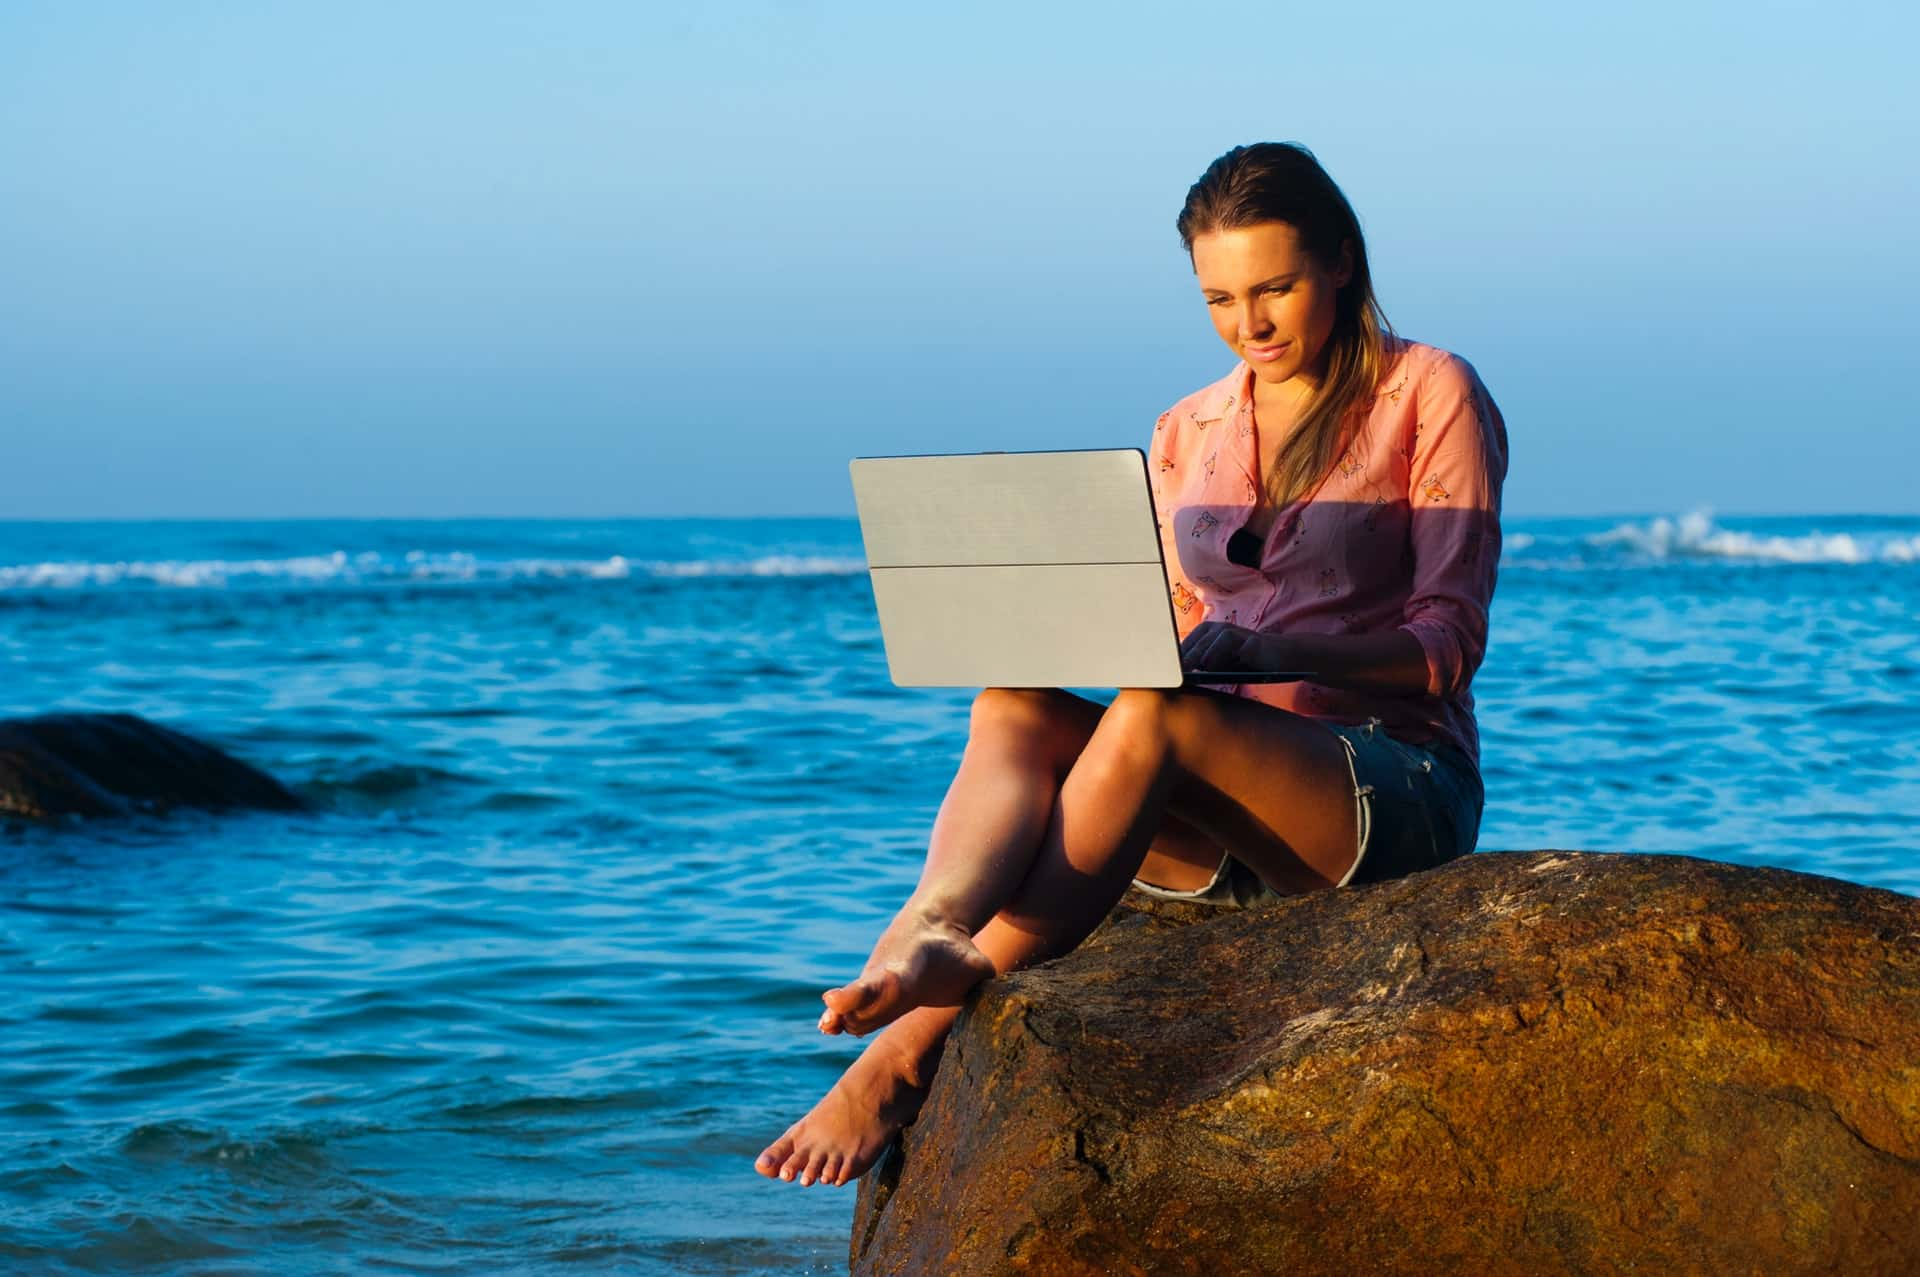 beach lady laptop hawaii